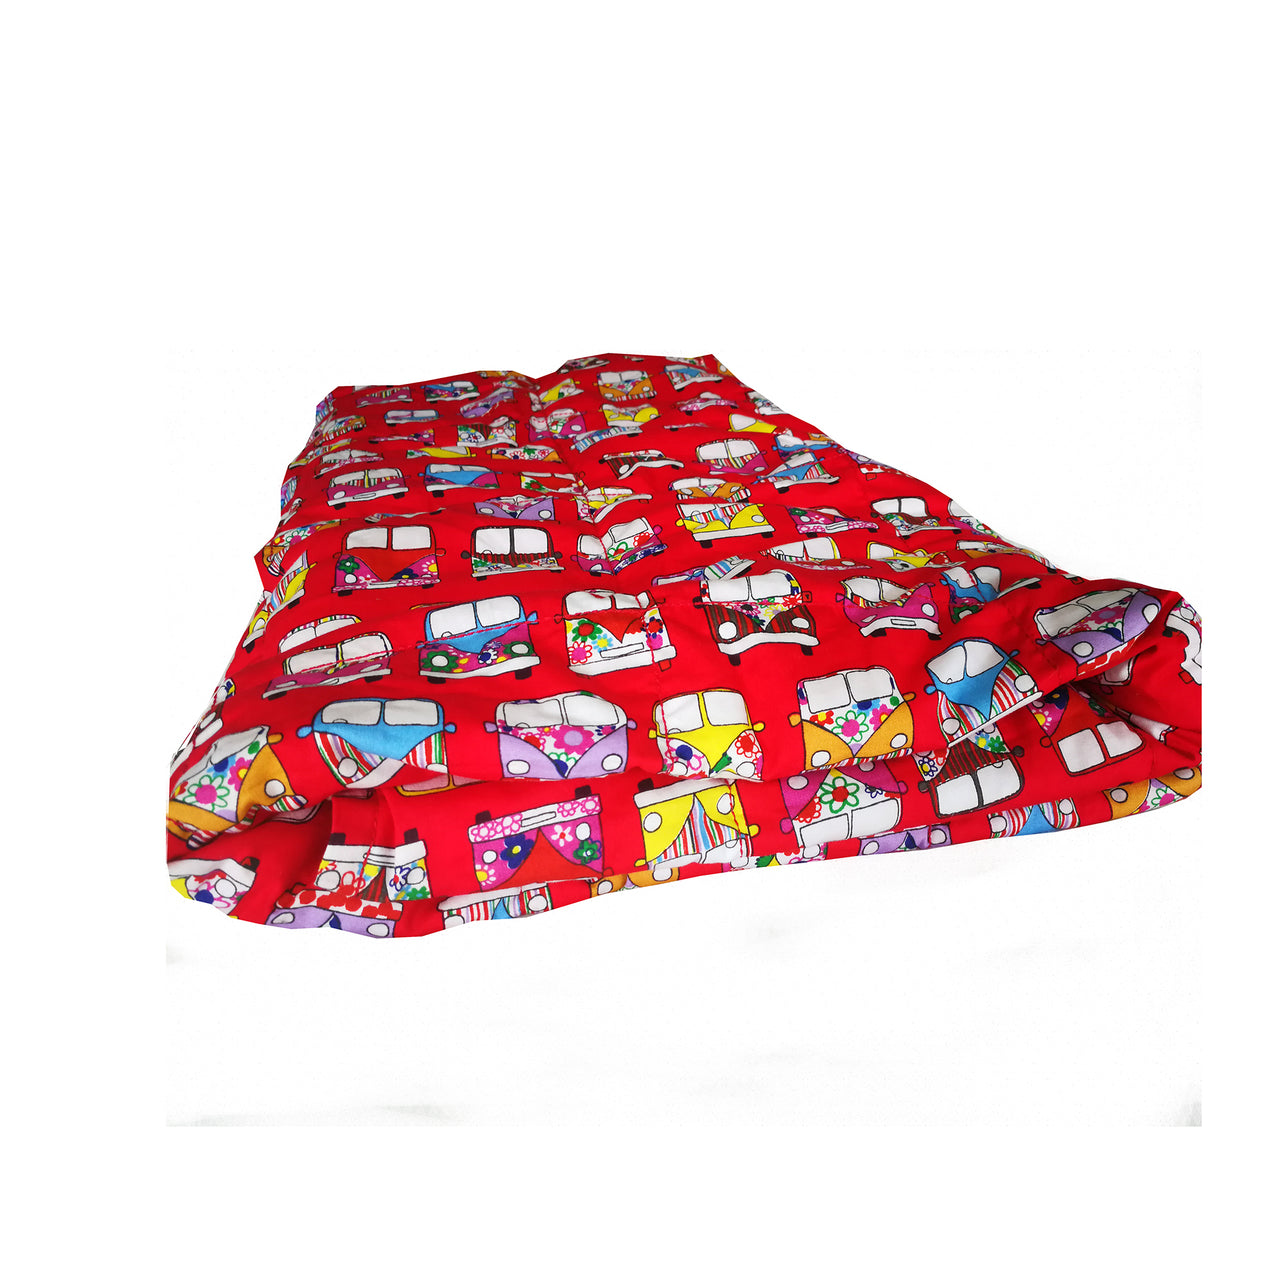 Sensory Weighted Blanket - Medium - Kids Room Decor | Toys Gifts | Childrens Interiors | Rooms for Rascals